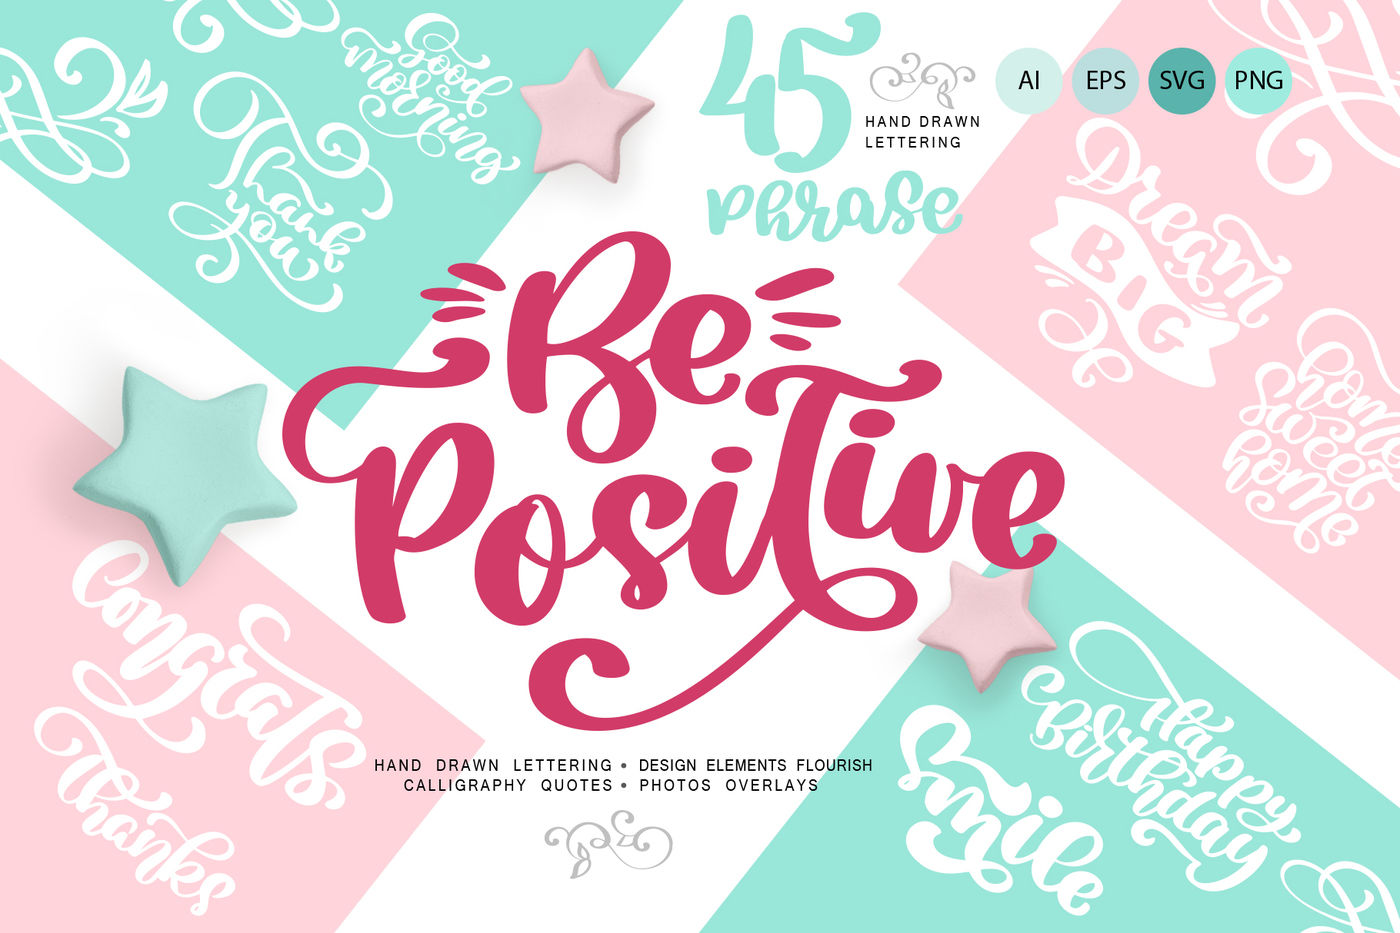 Positive Greeting Quotes And Flourish By Happy Letters